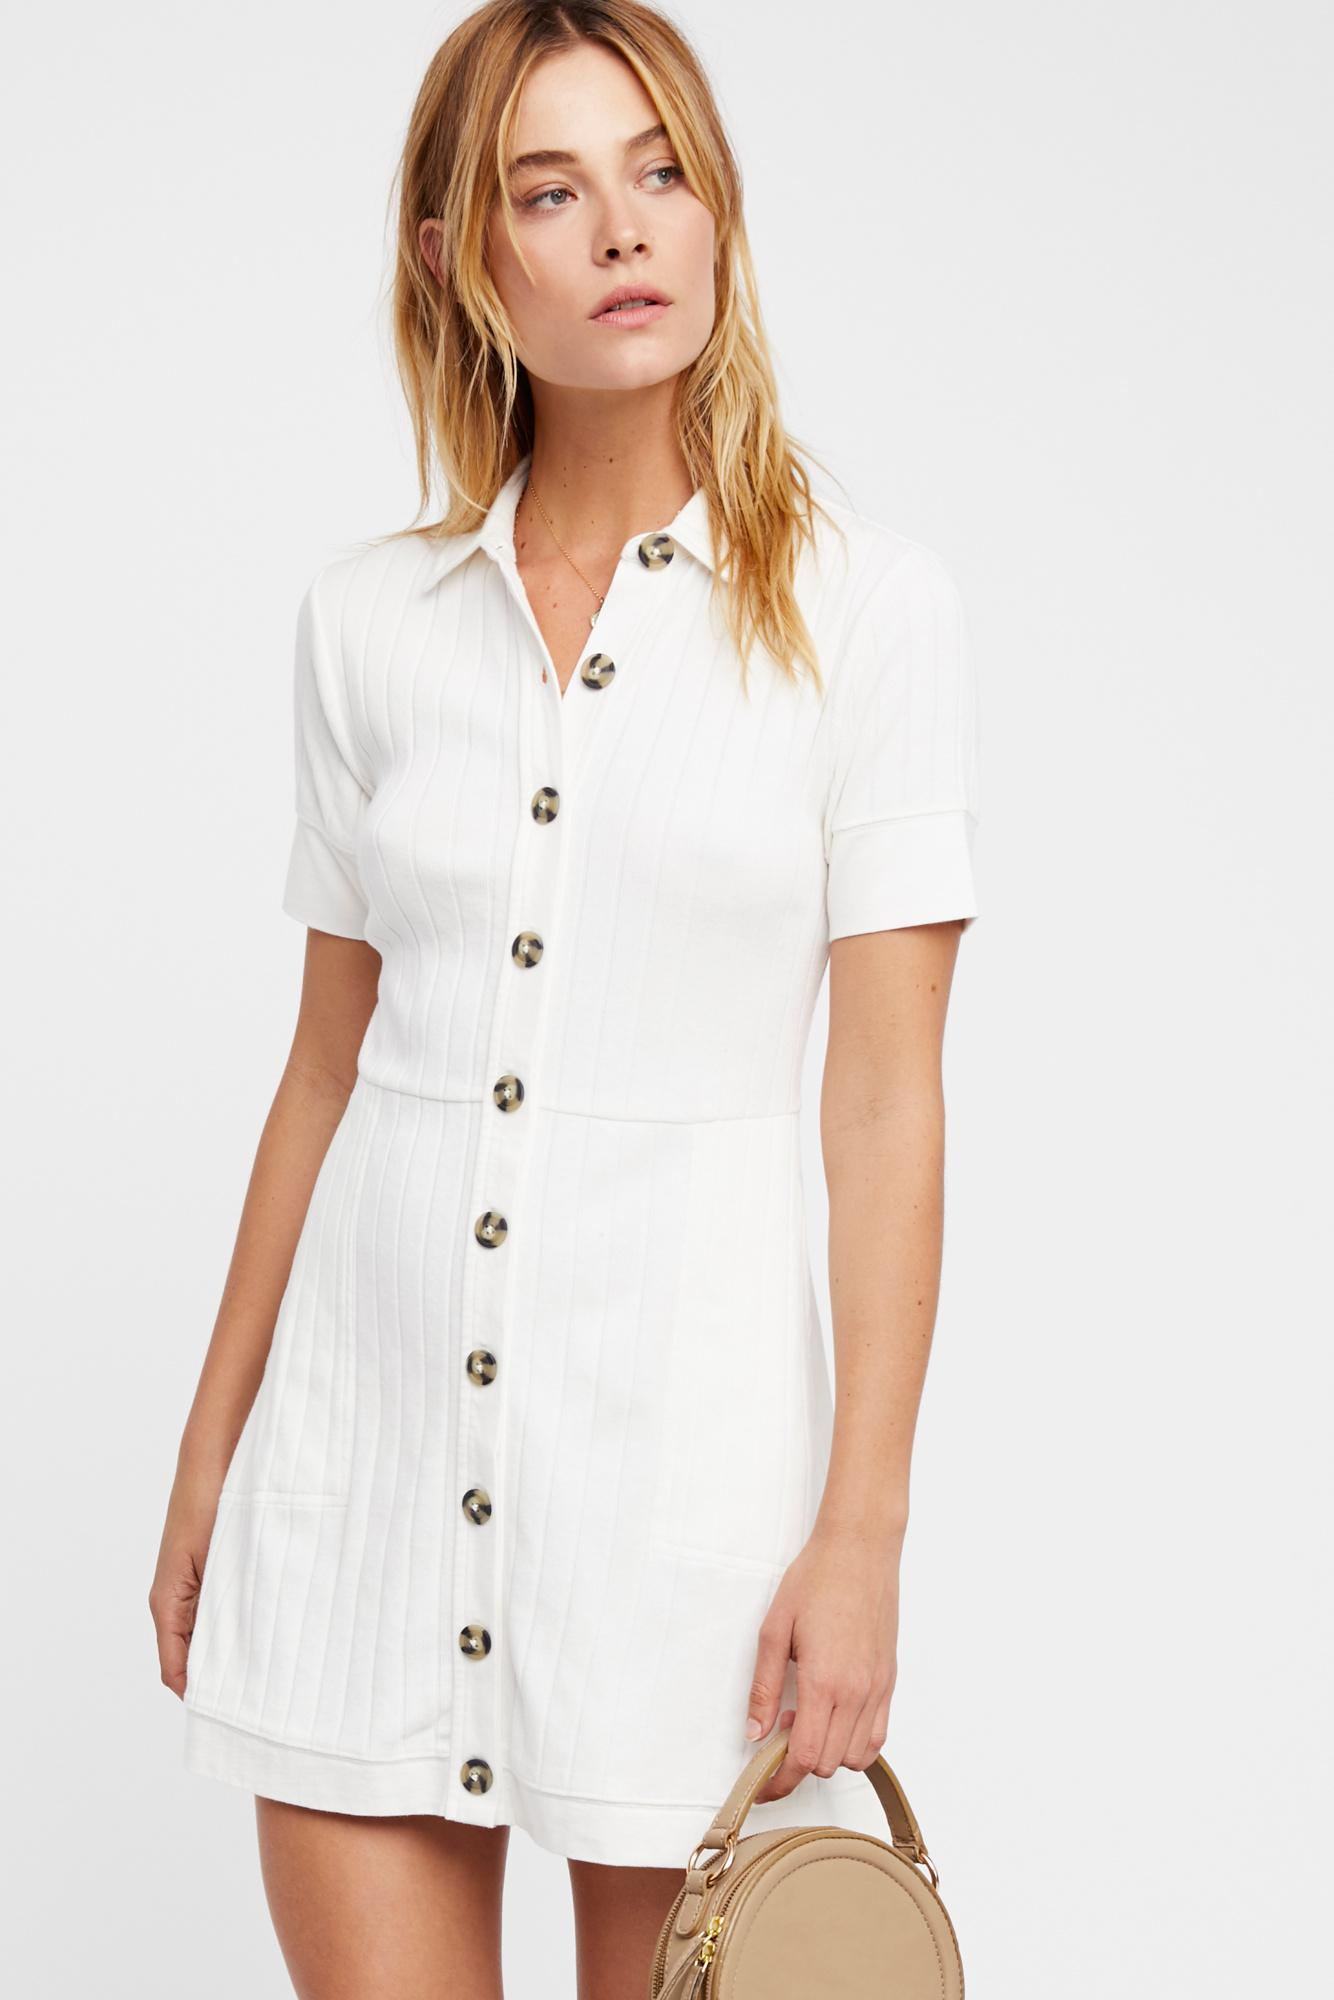 83ee13e4a6 Free People New Afternoon Mini Dress By Fp Beach in White - Lyst